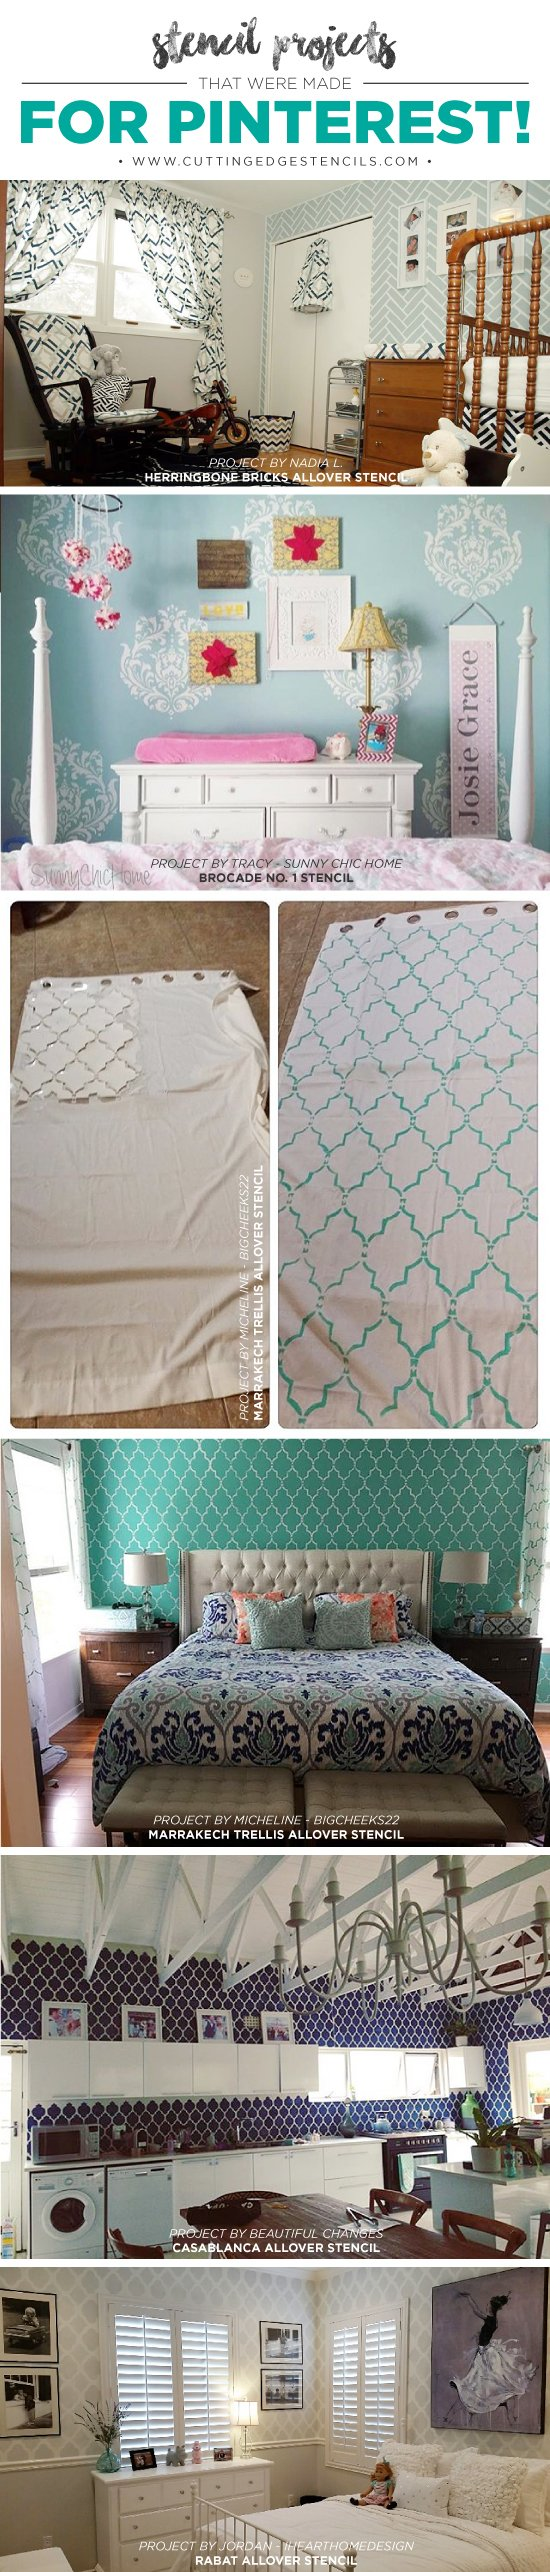 Cutting Edge Stencils shares DIY stenciled room ideas and home decor projects. http://www.cuttingedgestencils.com/wall-stencils-stencil-designs.html